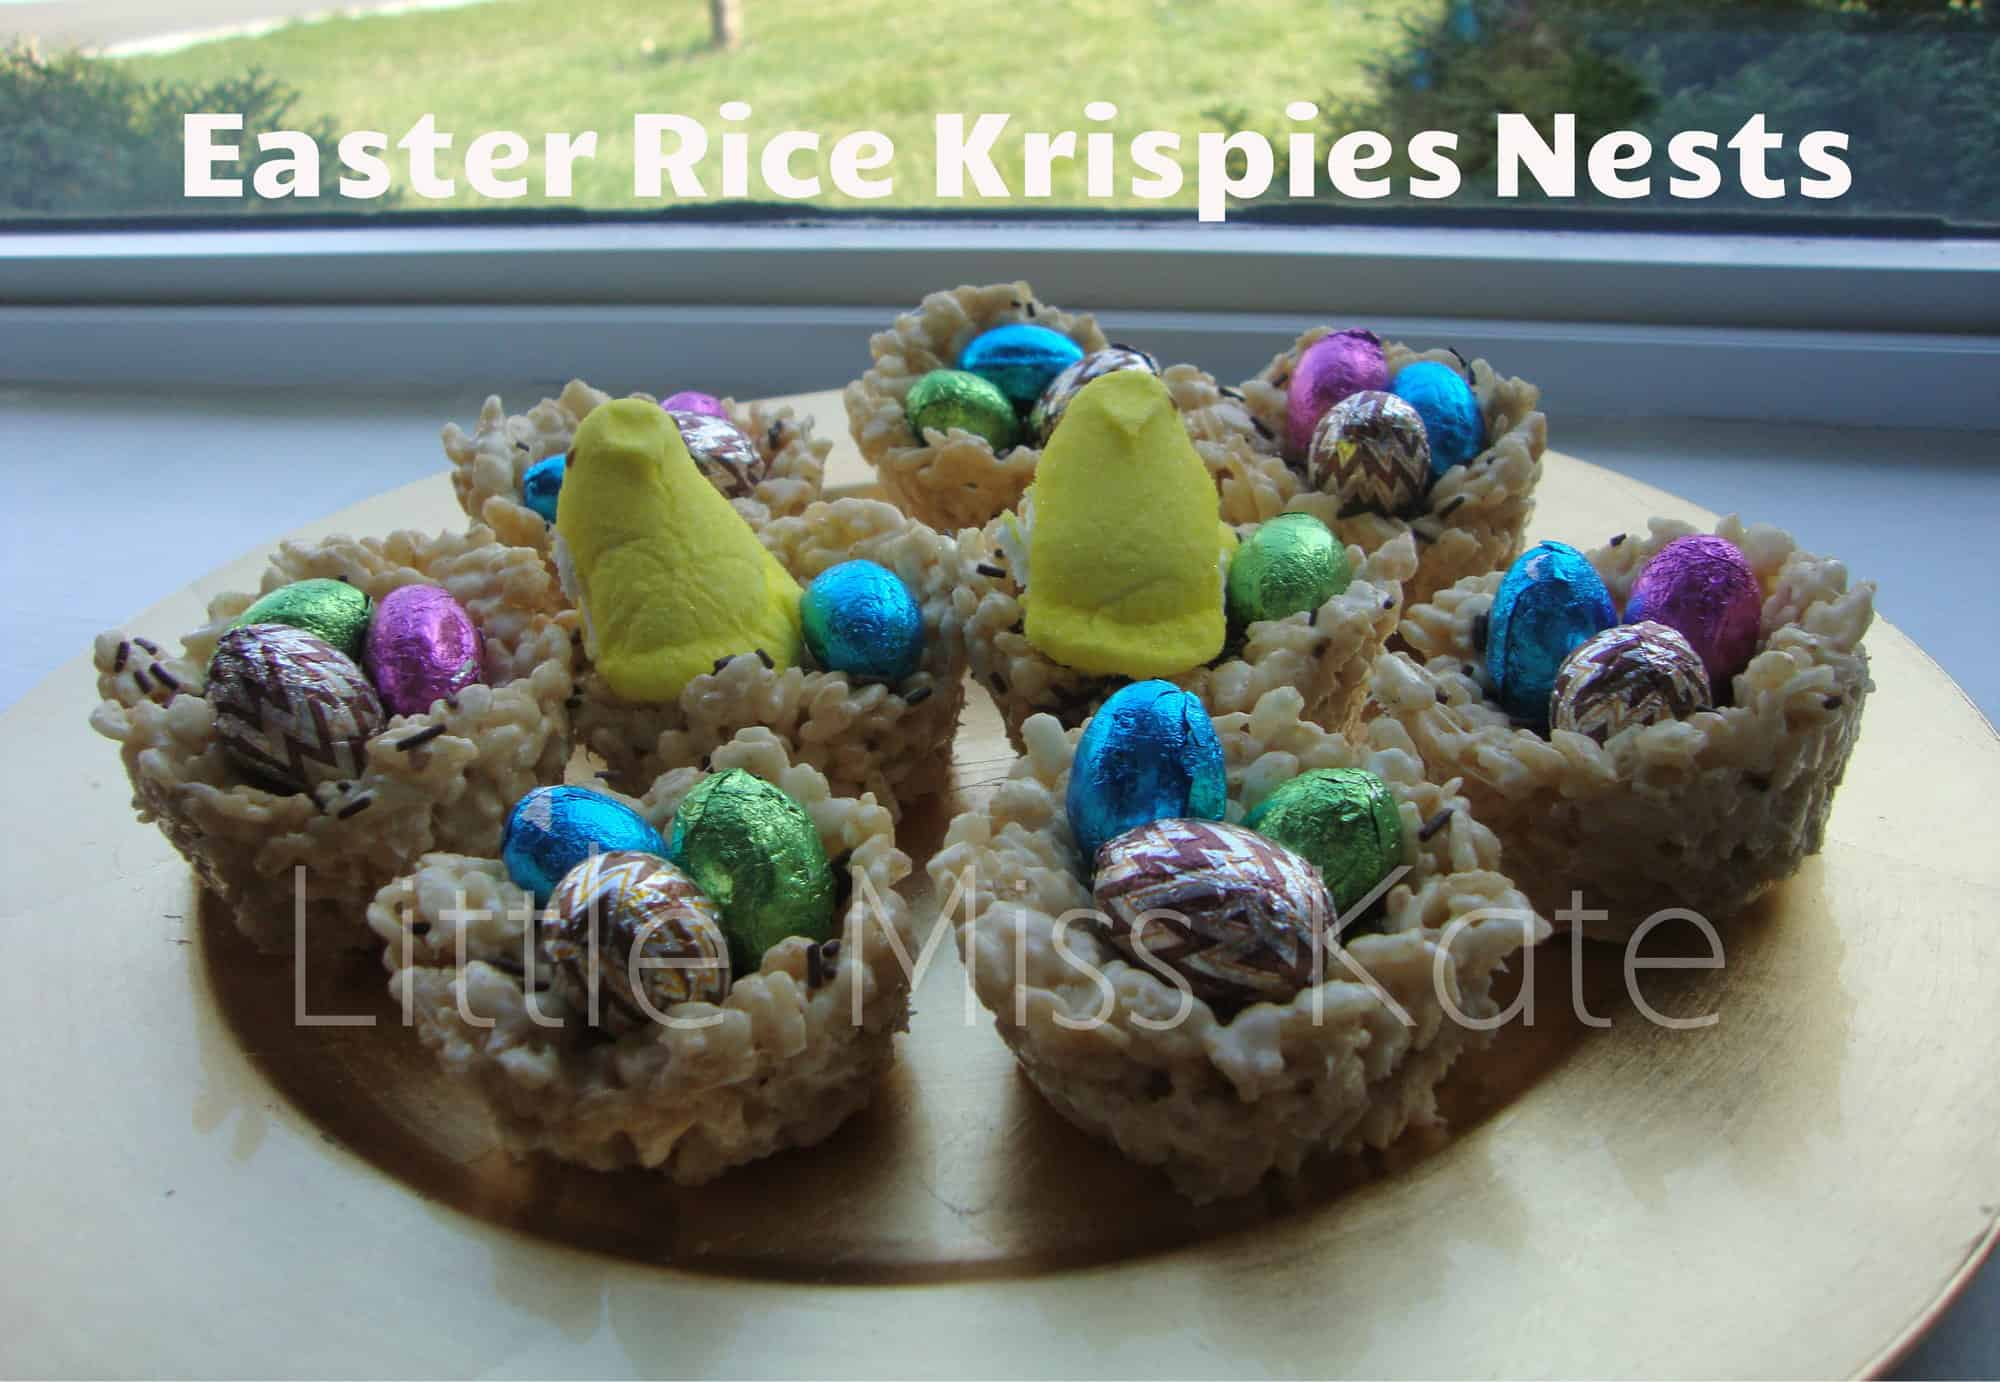 Easter Rice Krispies Nests via LittleMissKate.ca